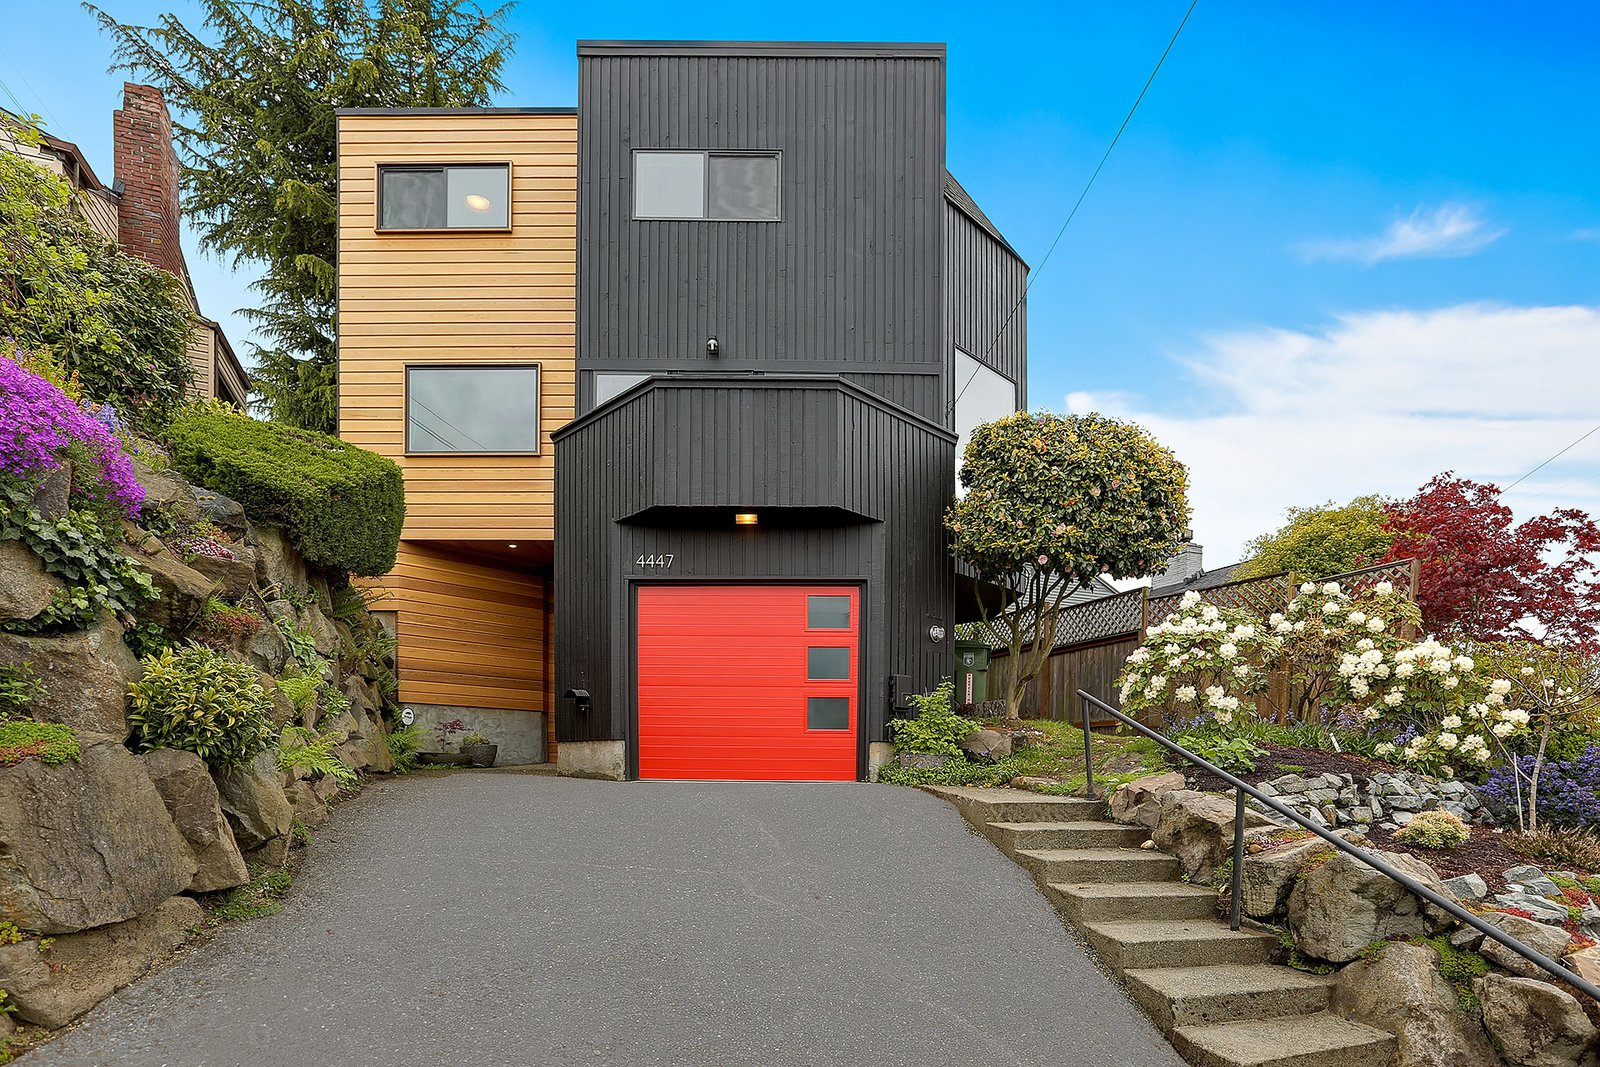 The front of the Monolith is framed by granite and basalt rock walls and features clear cedar siding, Sherwin Williams Tricorn Black painted wood siding, and Sherwin Williams Tomato red custom painted Clopay garage door.  The Monolith